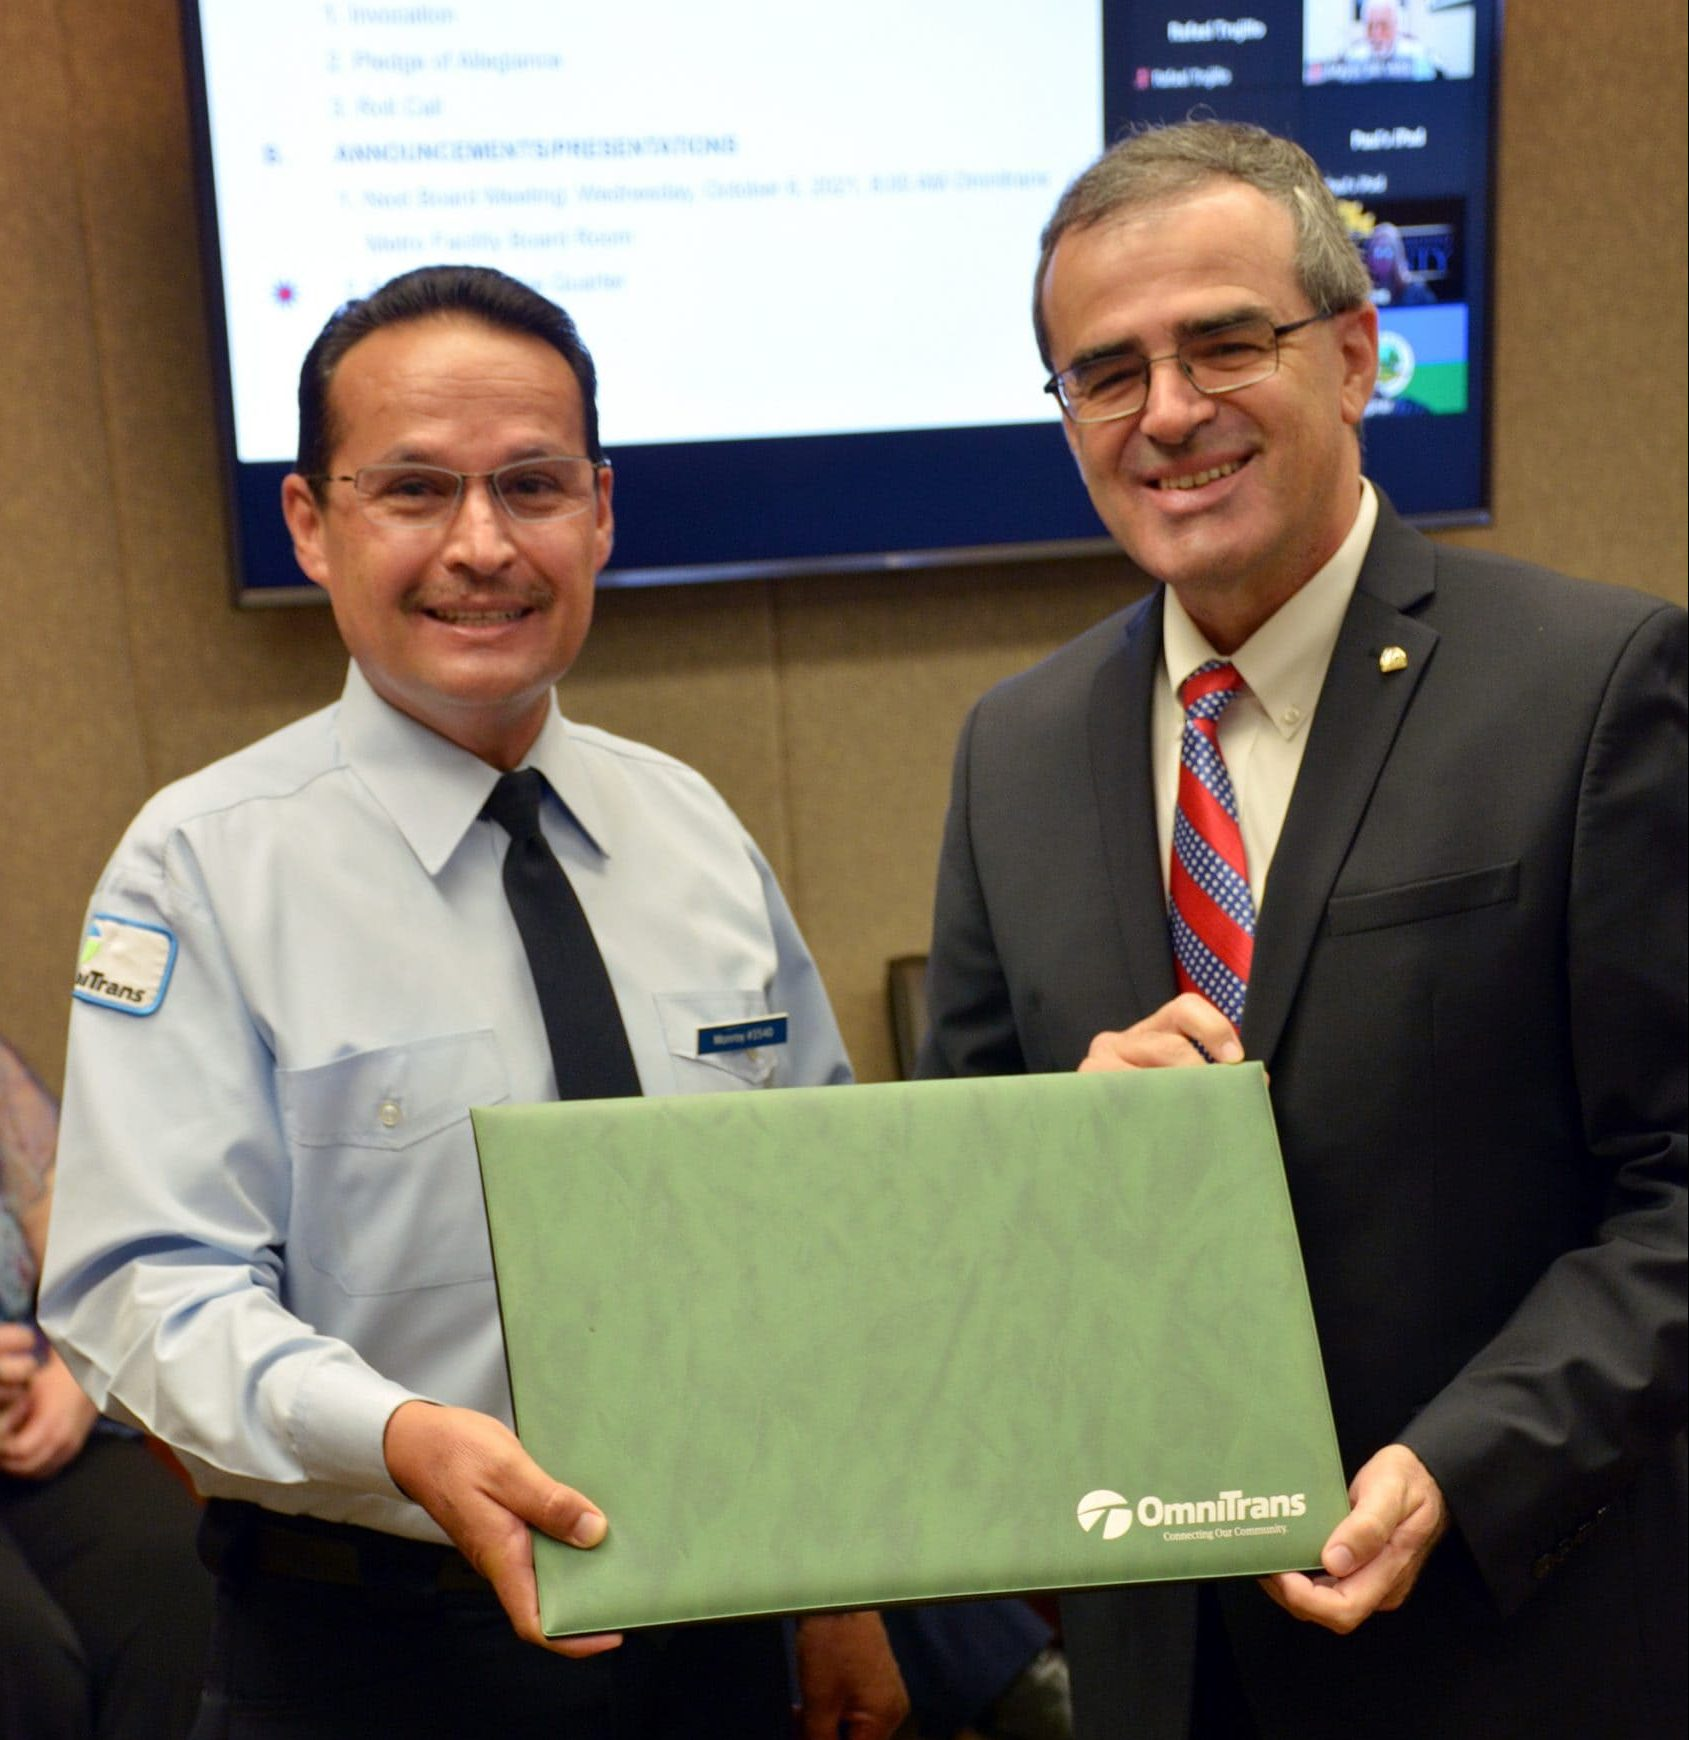 Employee of the Quarter presentation in the Board Room